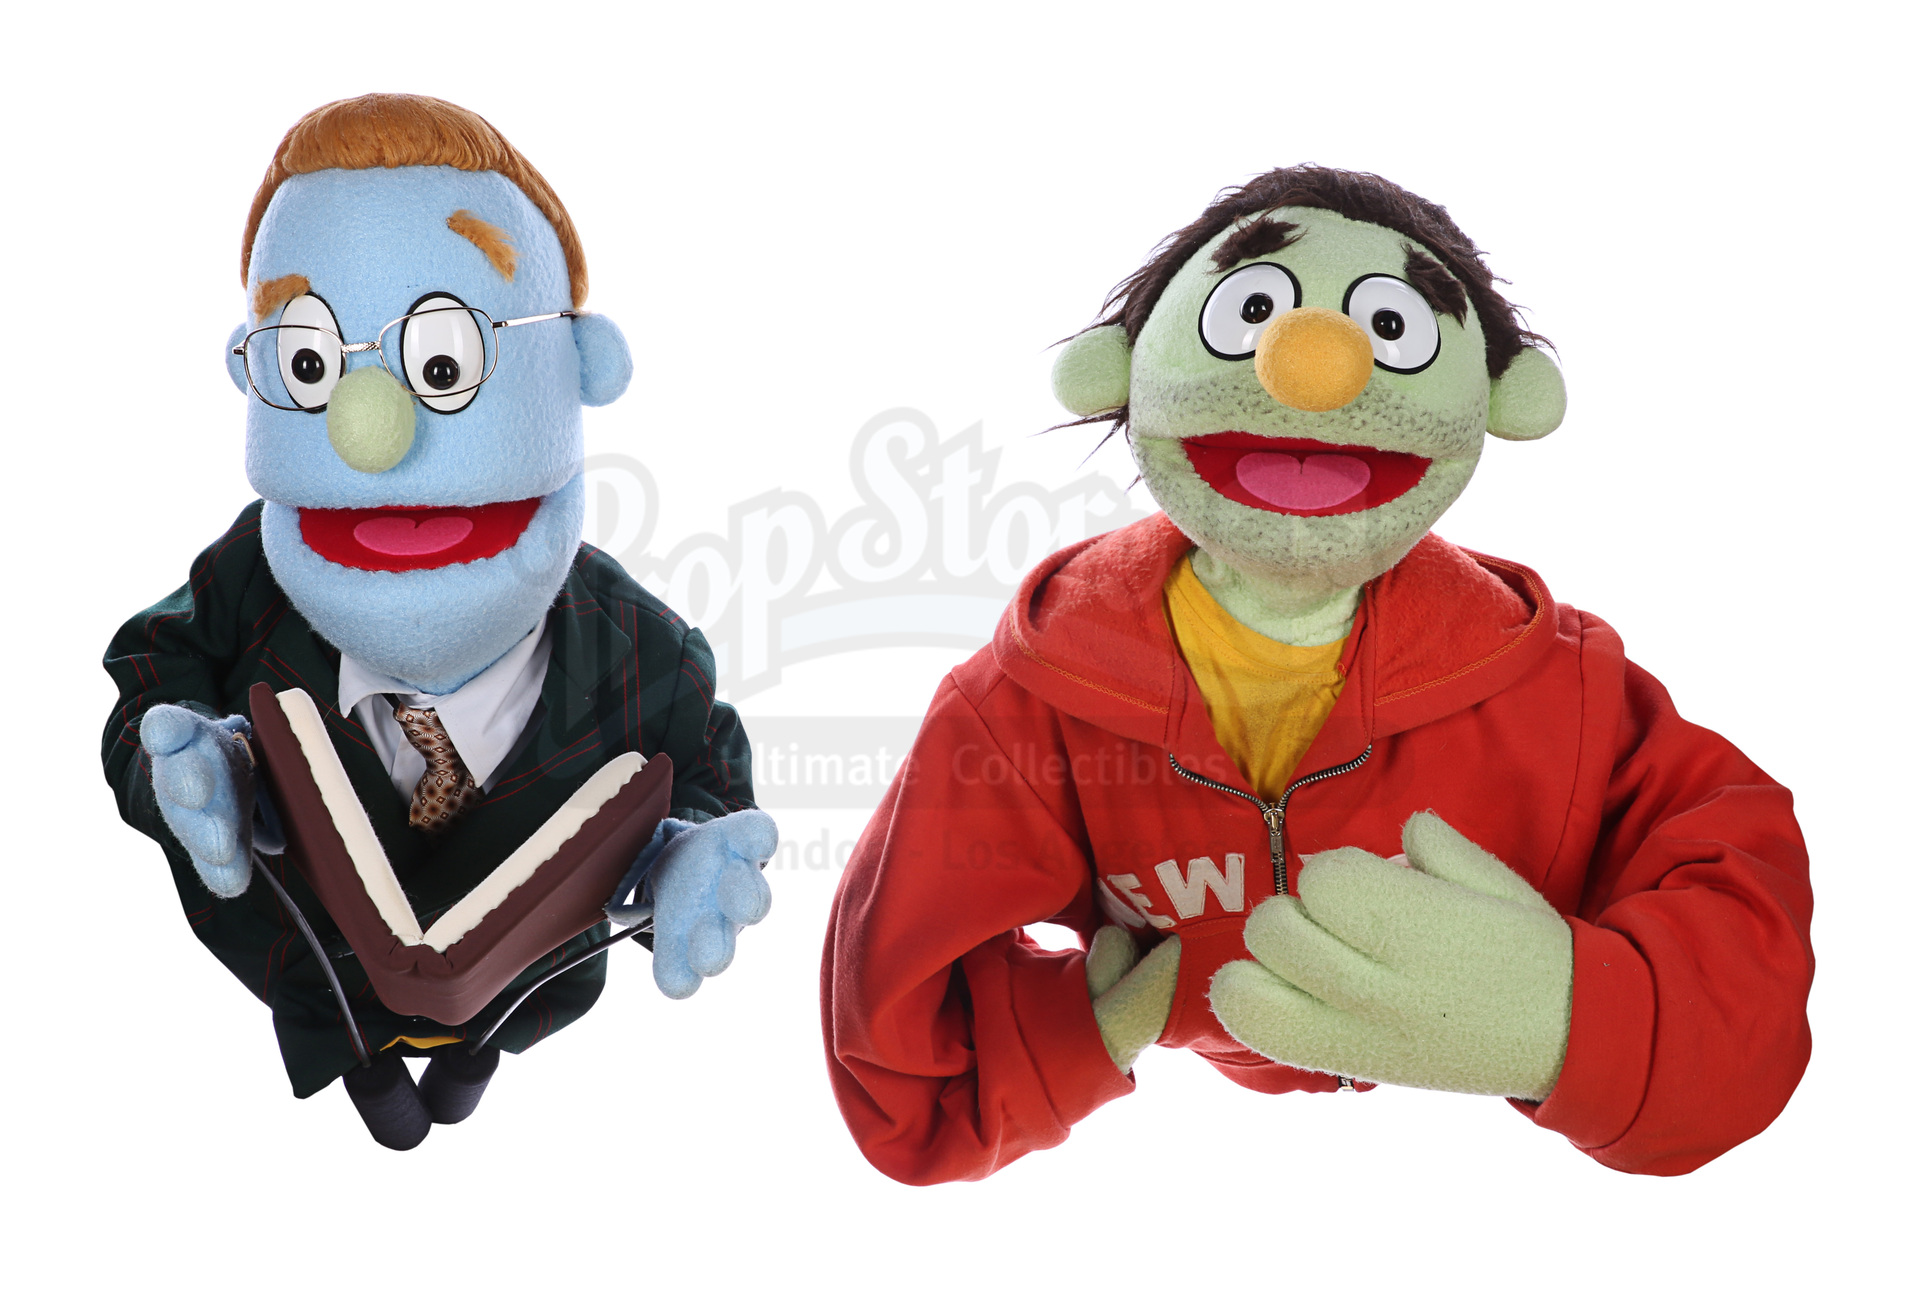 AVENUE Q (STAGE SHOW) - Nicky and Rod Puppets